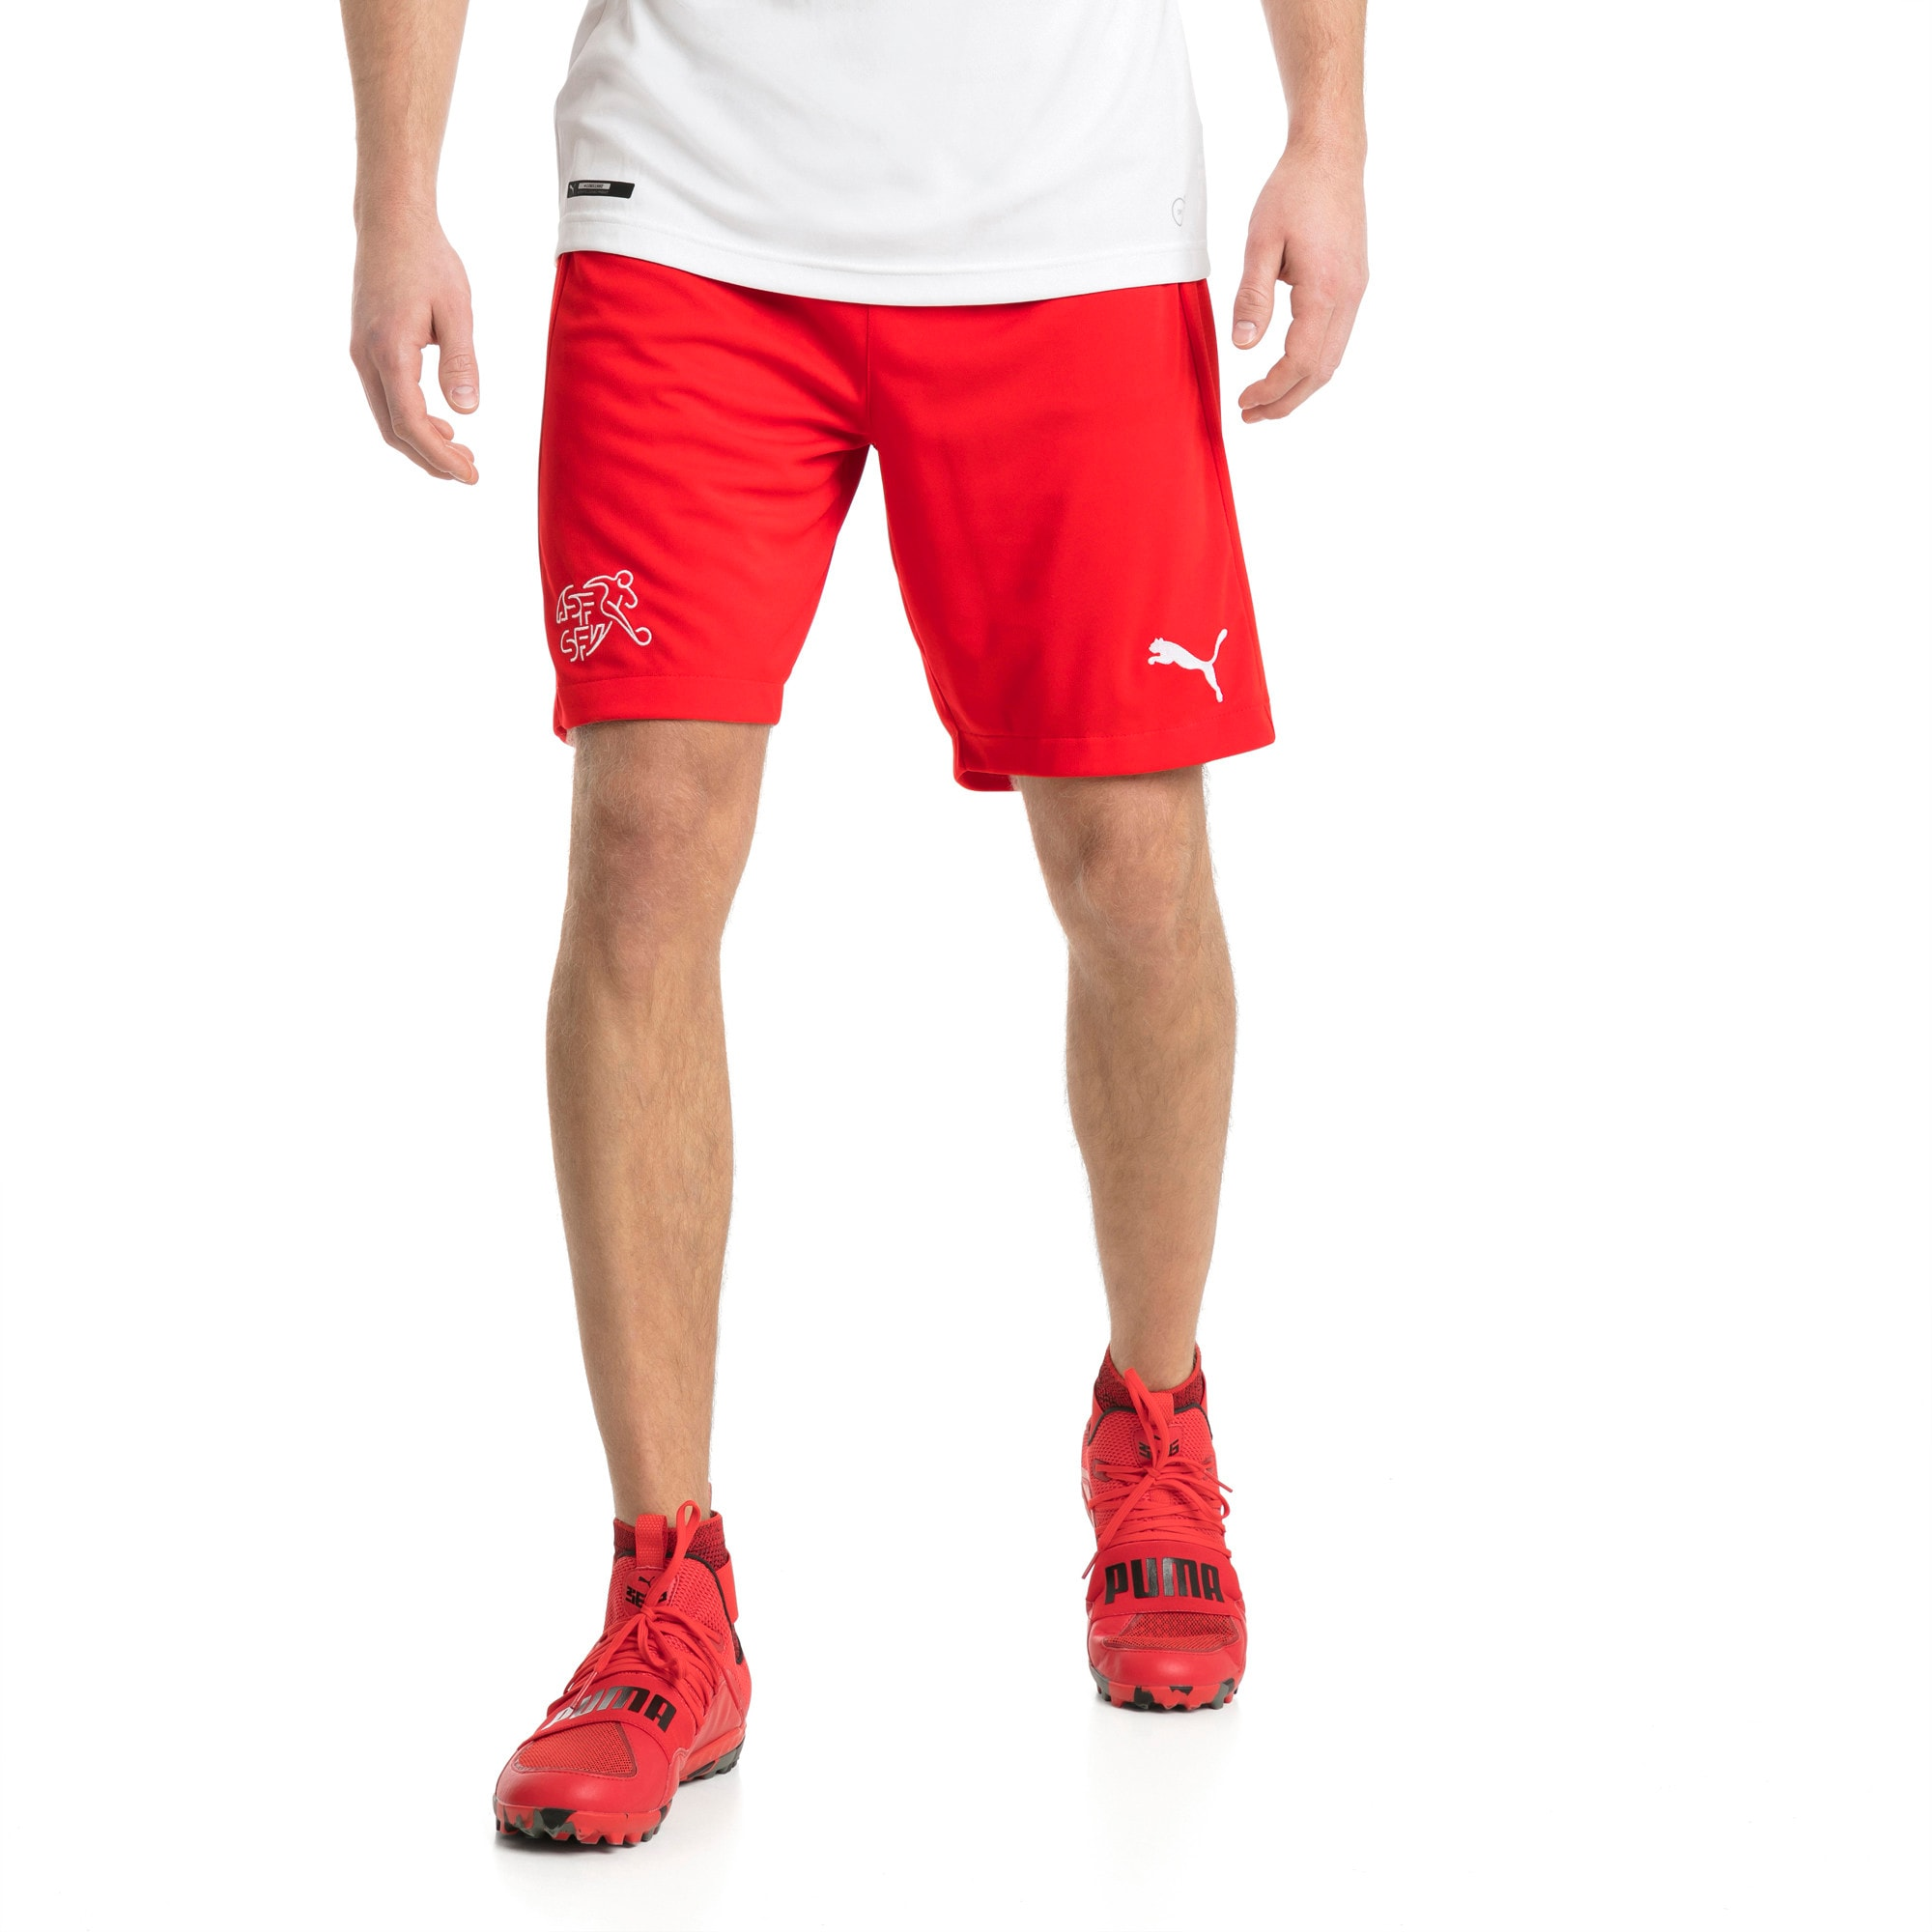 Thumbnail 2 of Switzerland Replica Shorts, Puma Red, medium